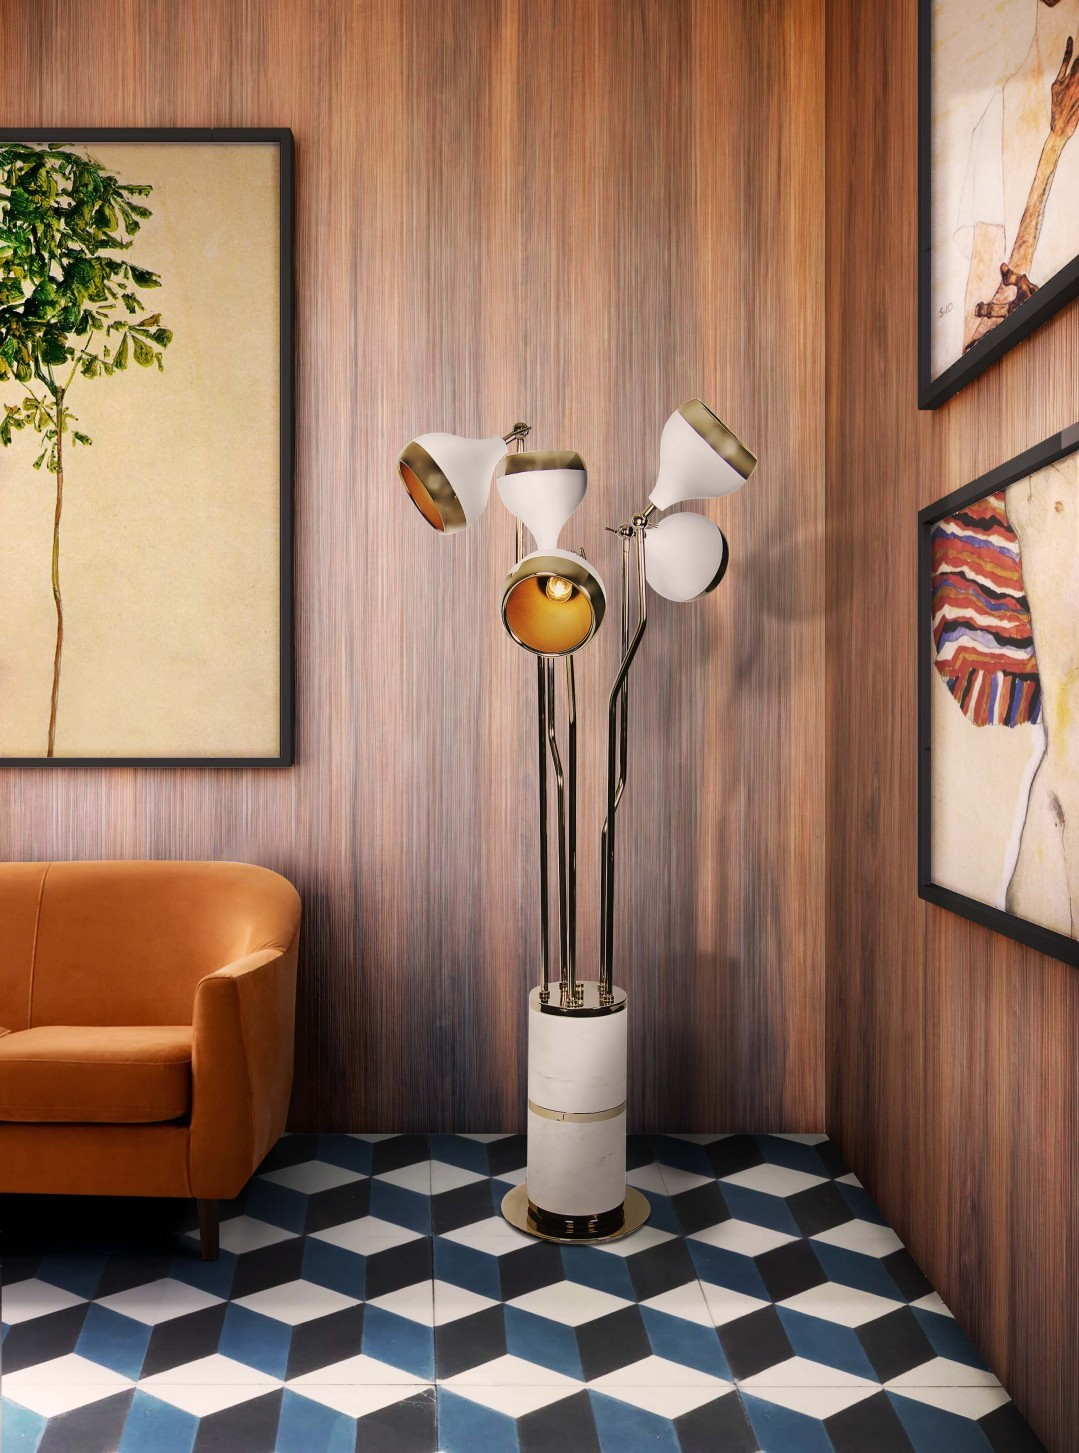 How Geometric Forms Can Give a Twist in House Decor 2